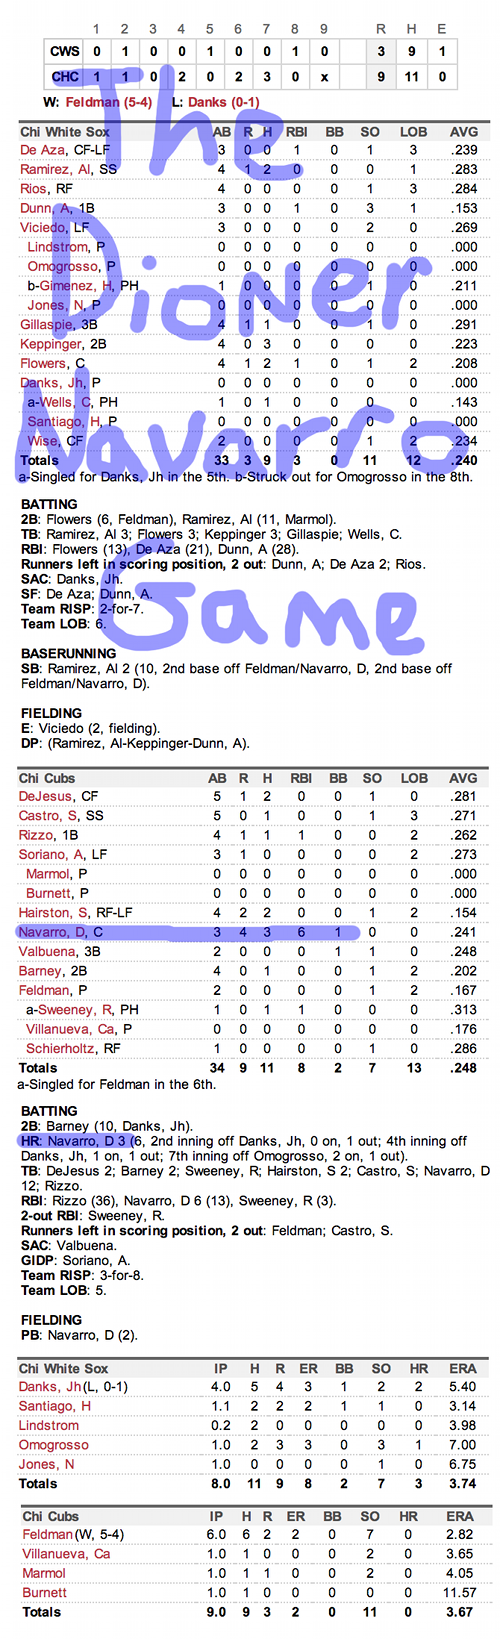 Enhanced Box Score: White Sox 3, Cubs 9 – May 29, 2013